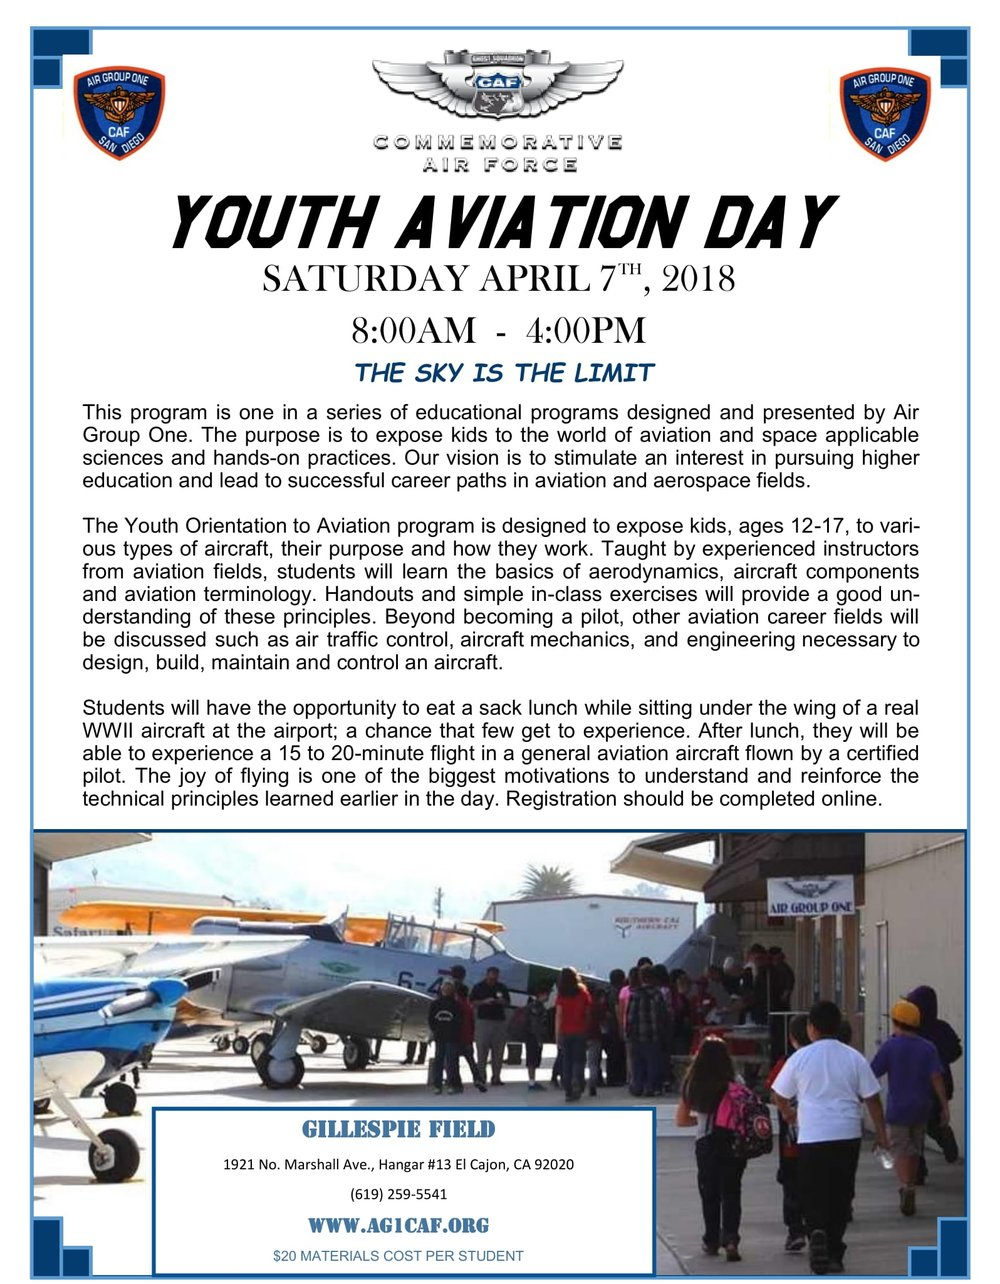 Youth Aviation Day Flyer-1.jpg